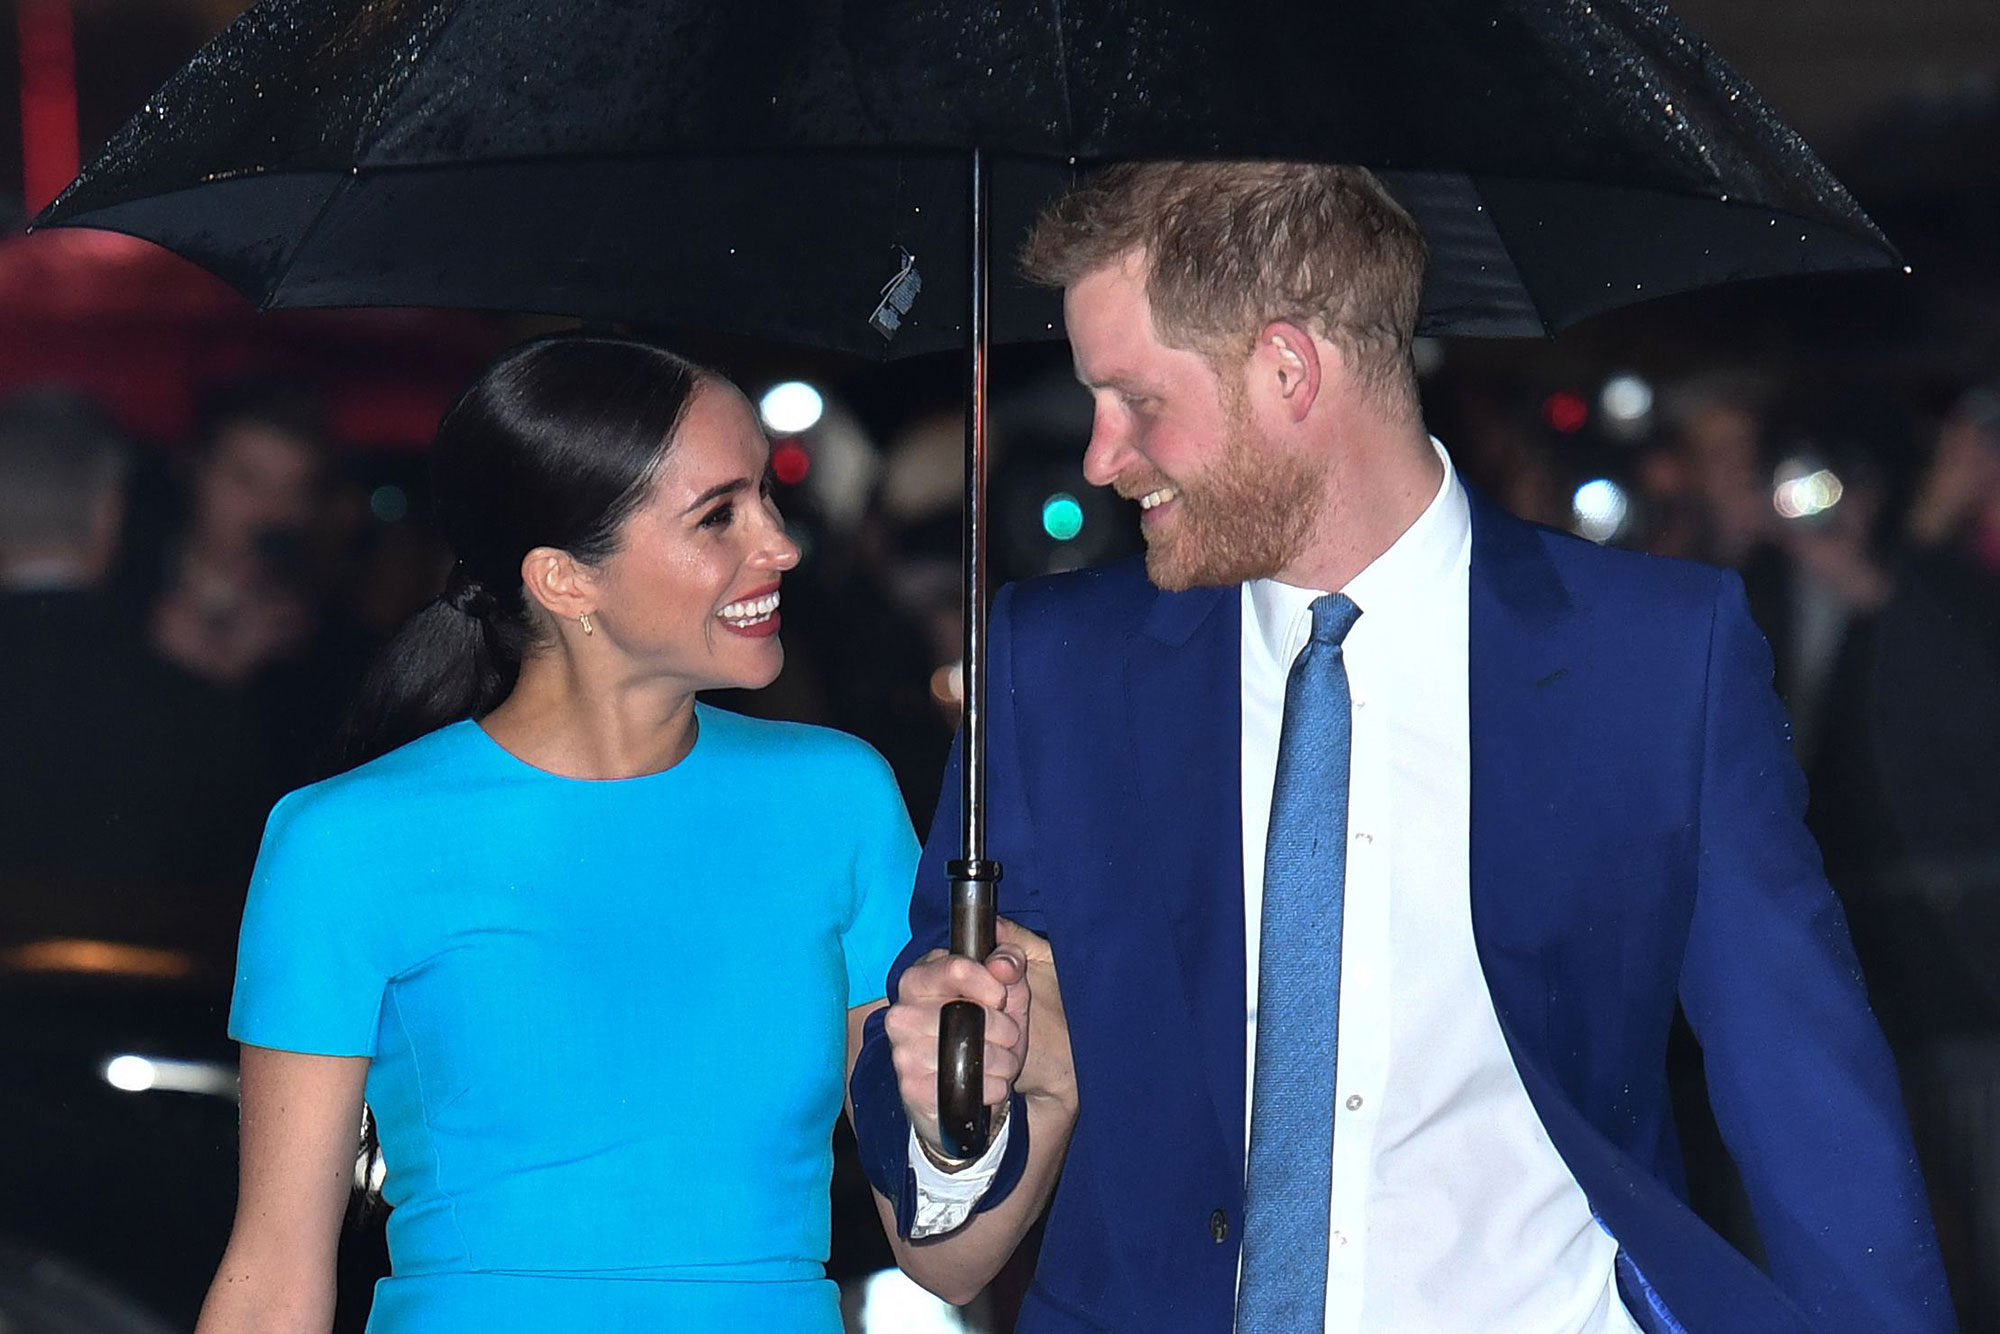 prince harry meghan were really happy with iconic rain photo prince harry meghan were really happy